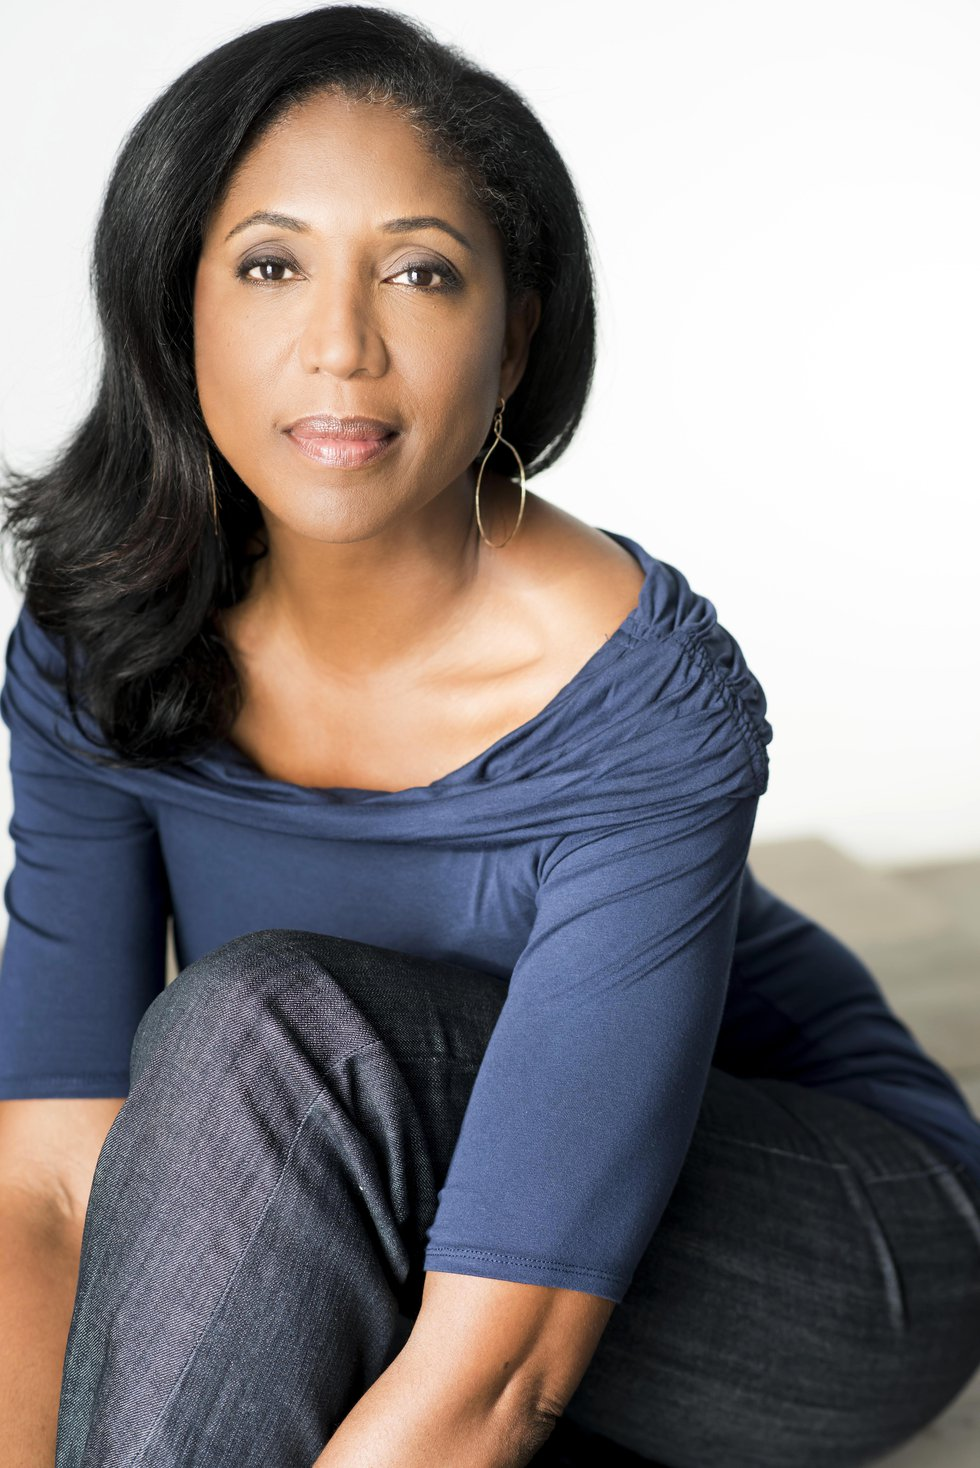 Nita Whitaker is the first Black Miss Louisiana. She's a vocalist, actress, and author.